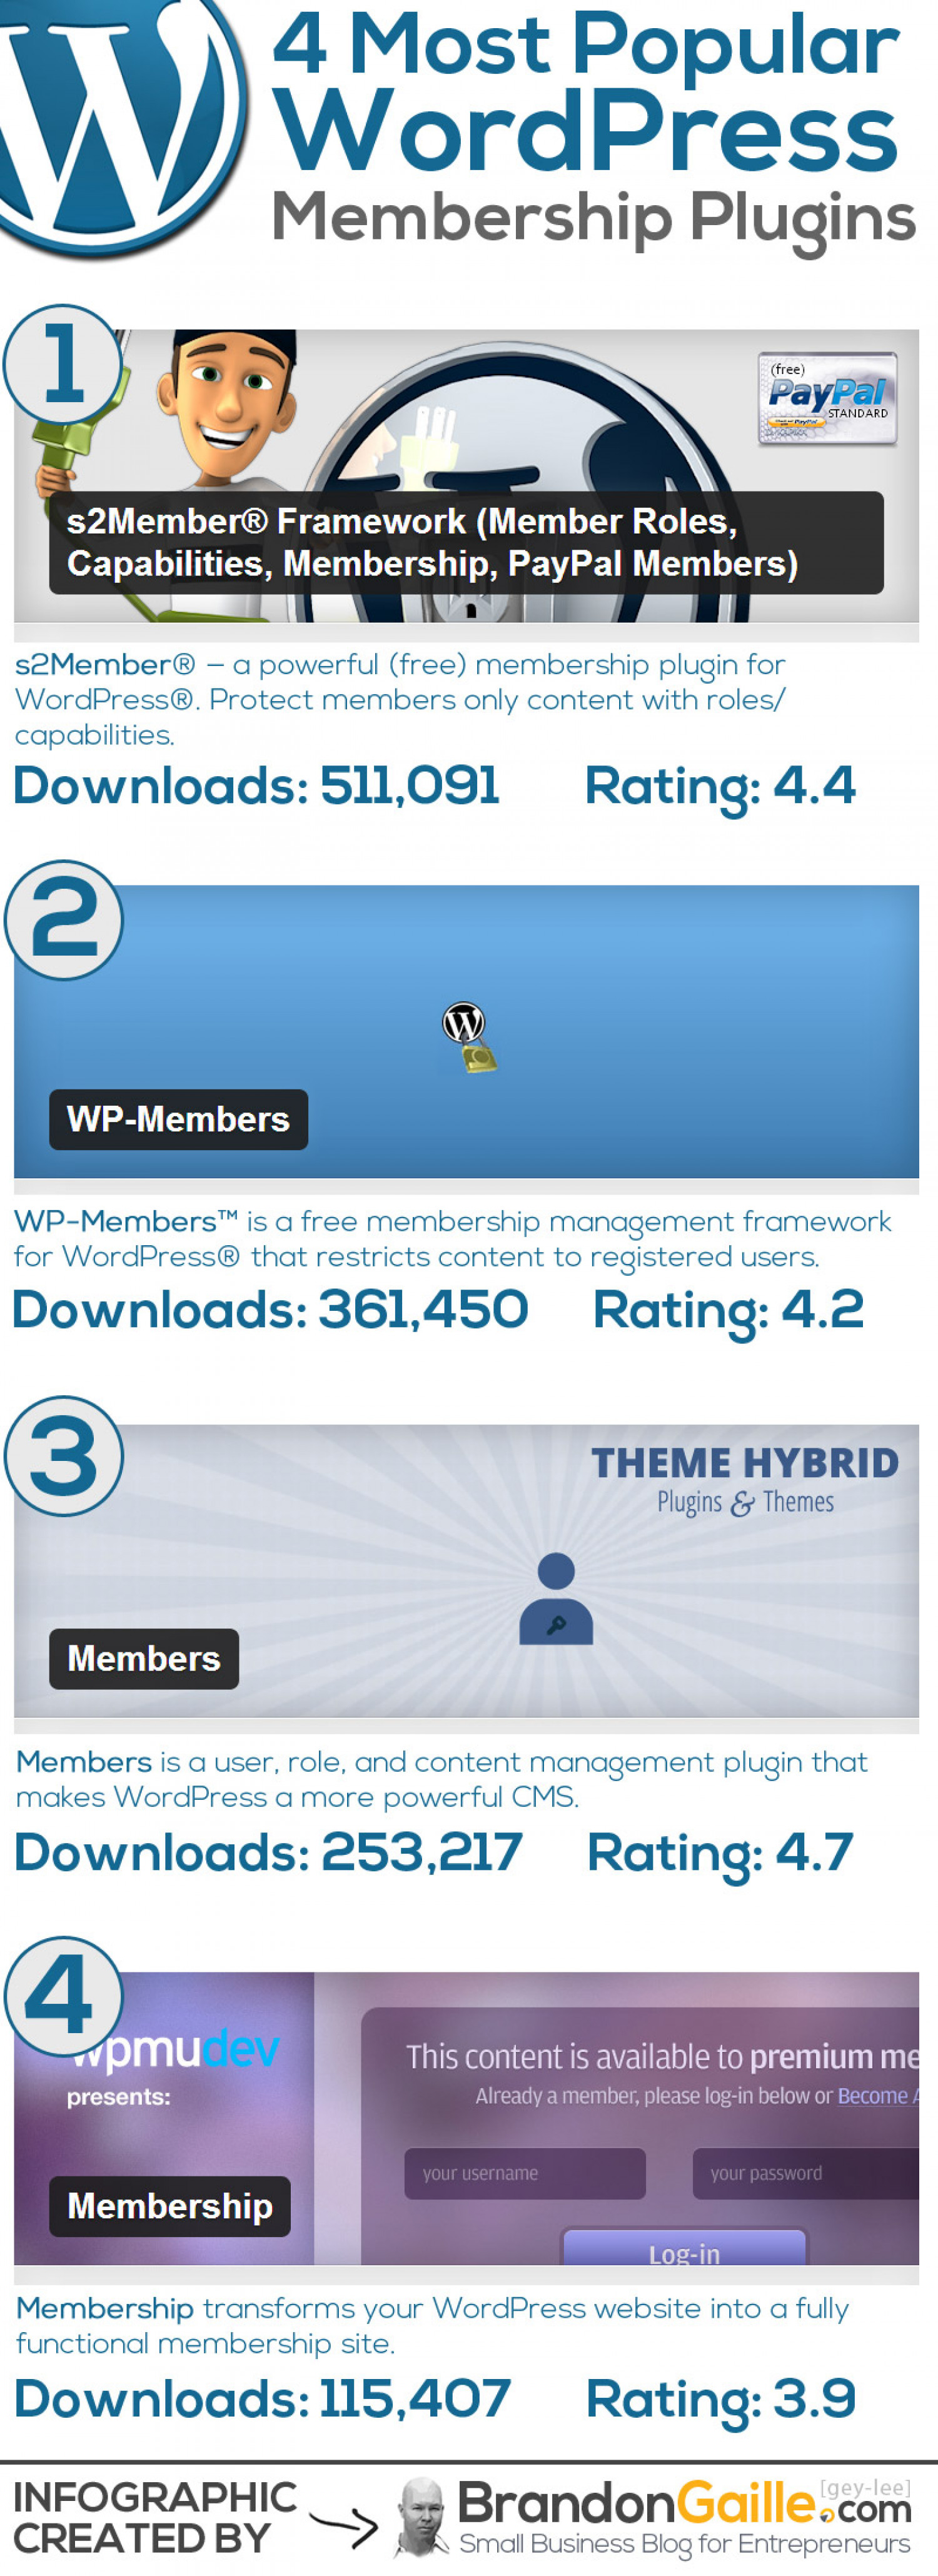 Most Popular WordPress Membership Plugins Infographic